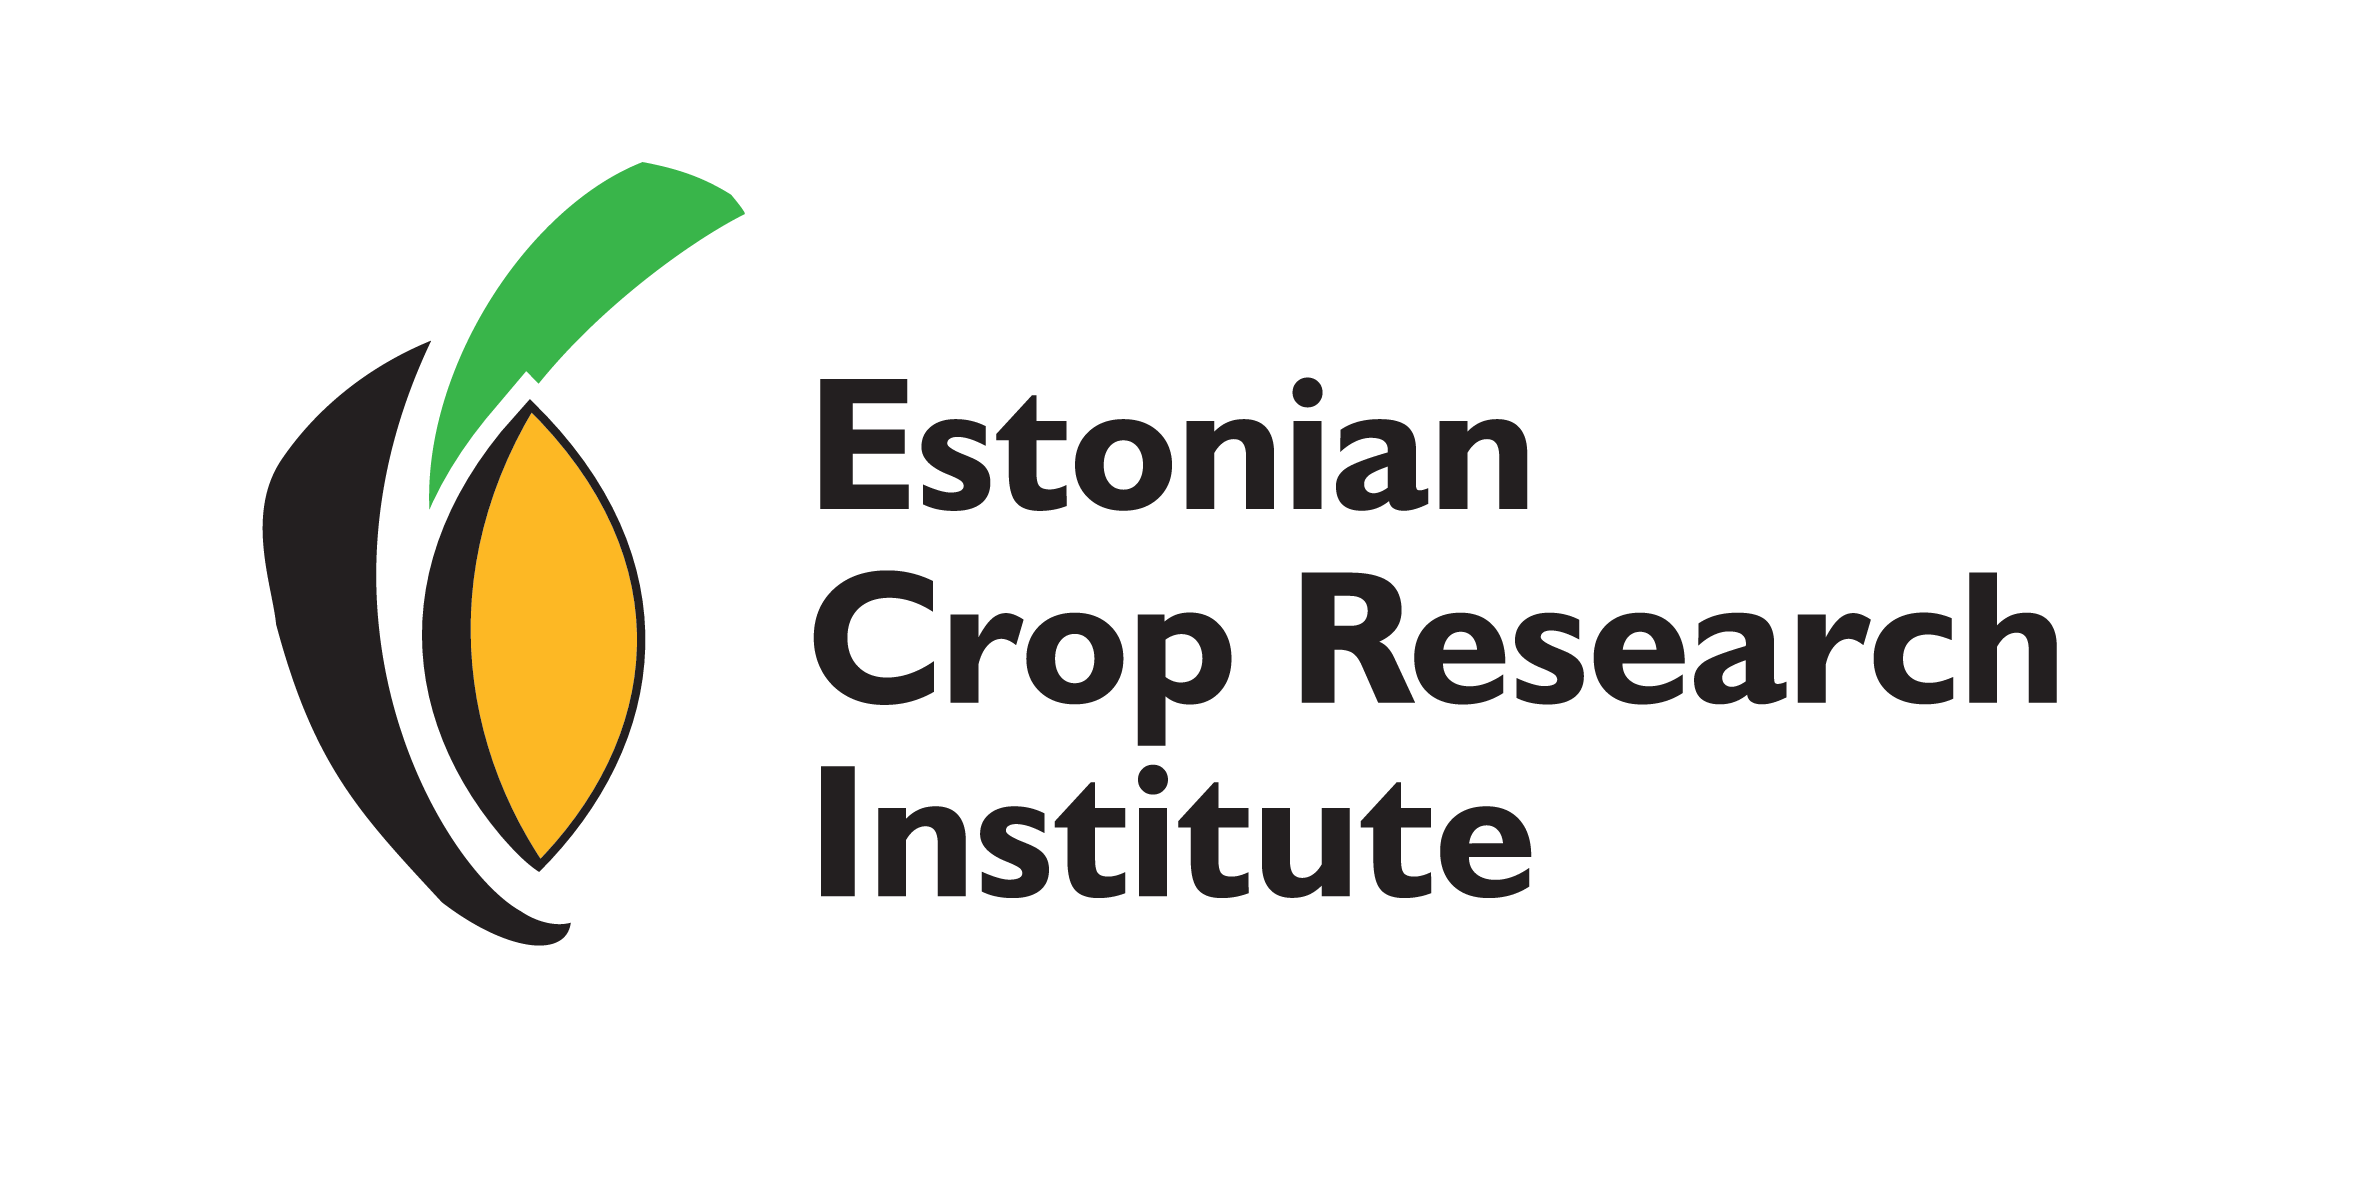 Estinian Crop Research Institute